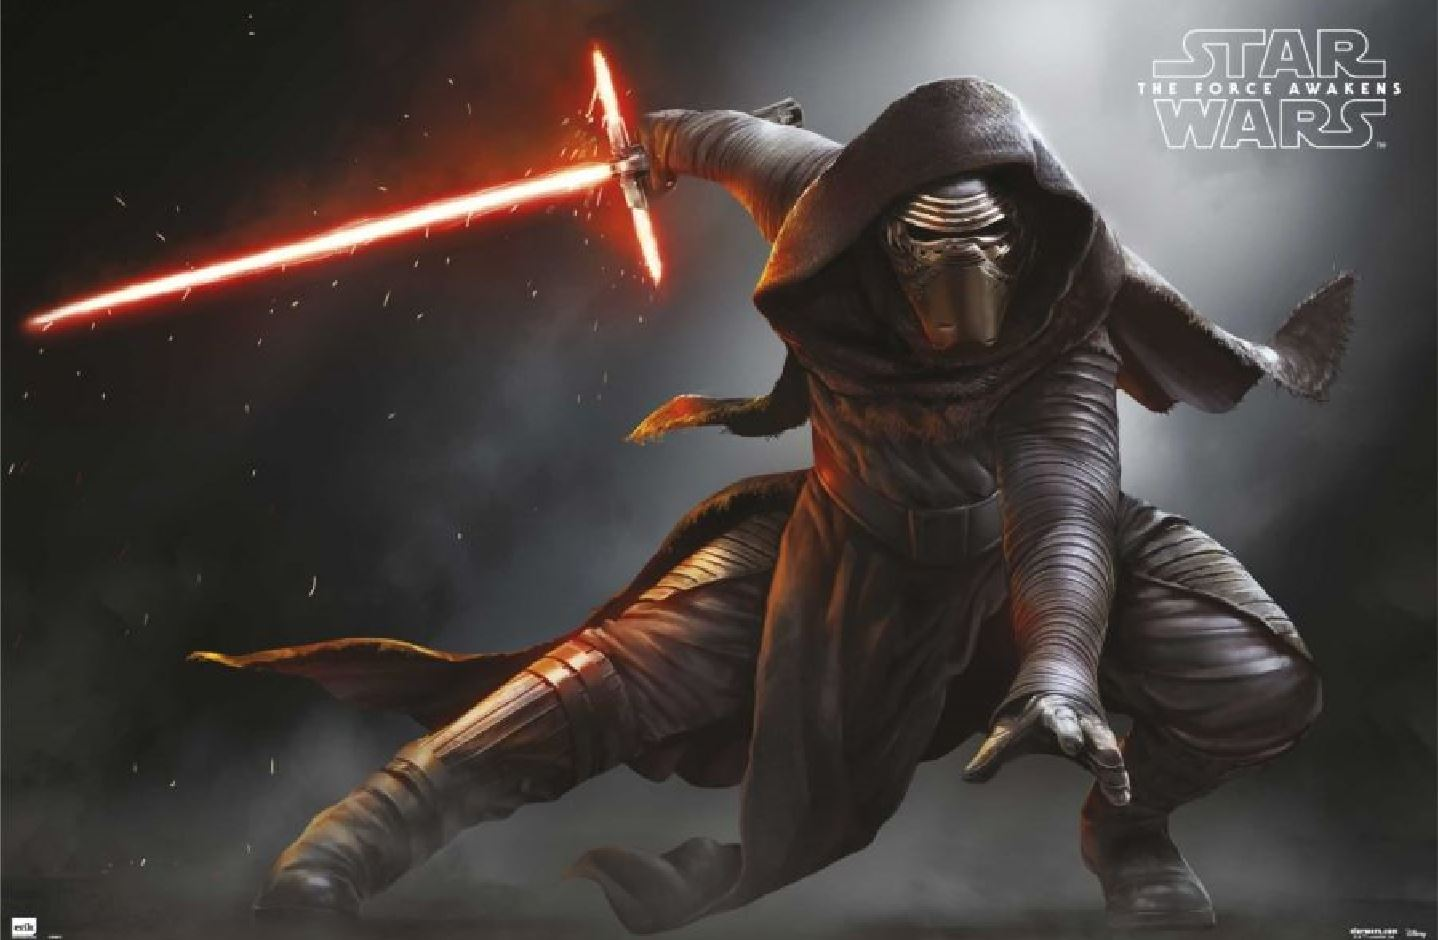 Kylo Ren in The Force Awakens poster